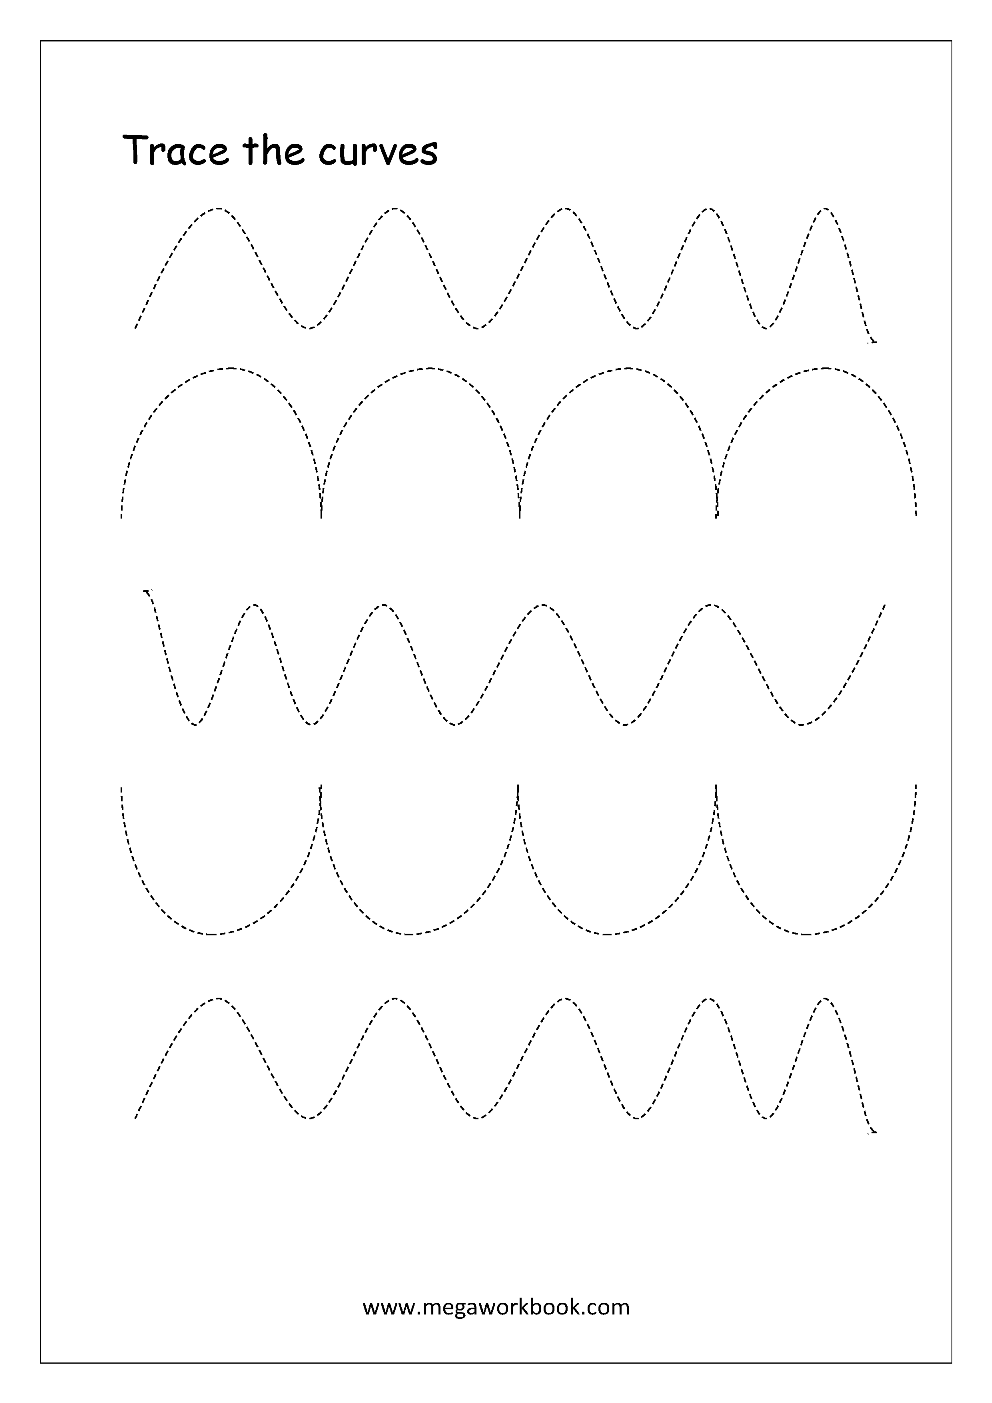 image relating to Tracing Lines Worksheets Printable identify Totally free Printable Pre-Crafting Tracing Worksheets For